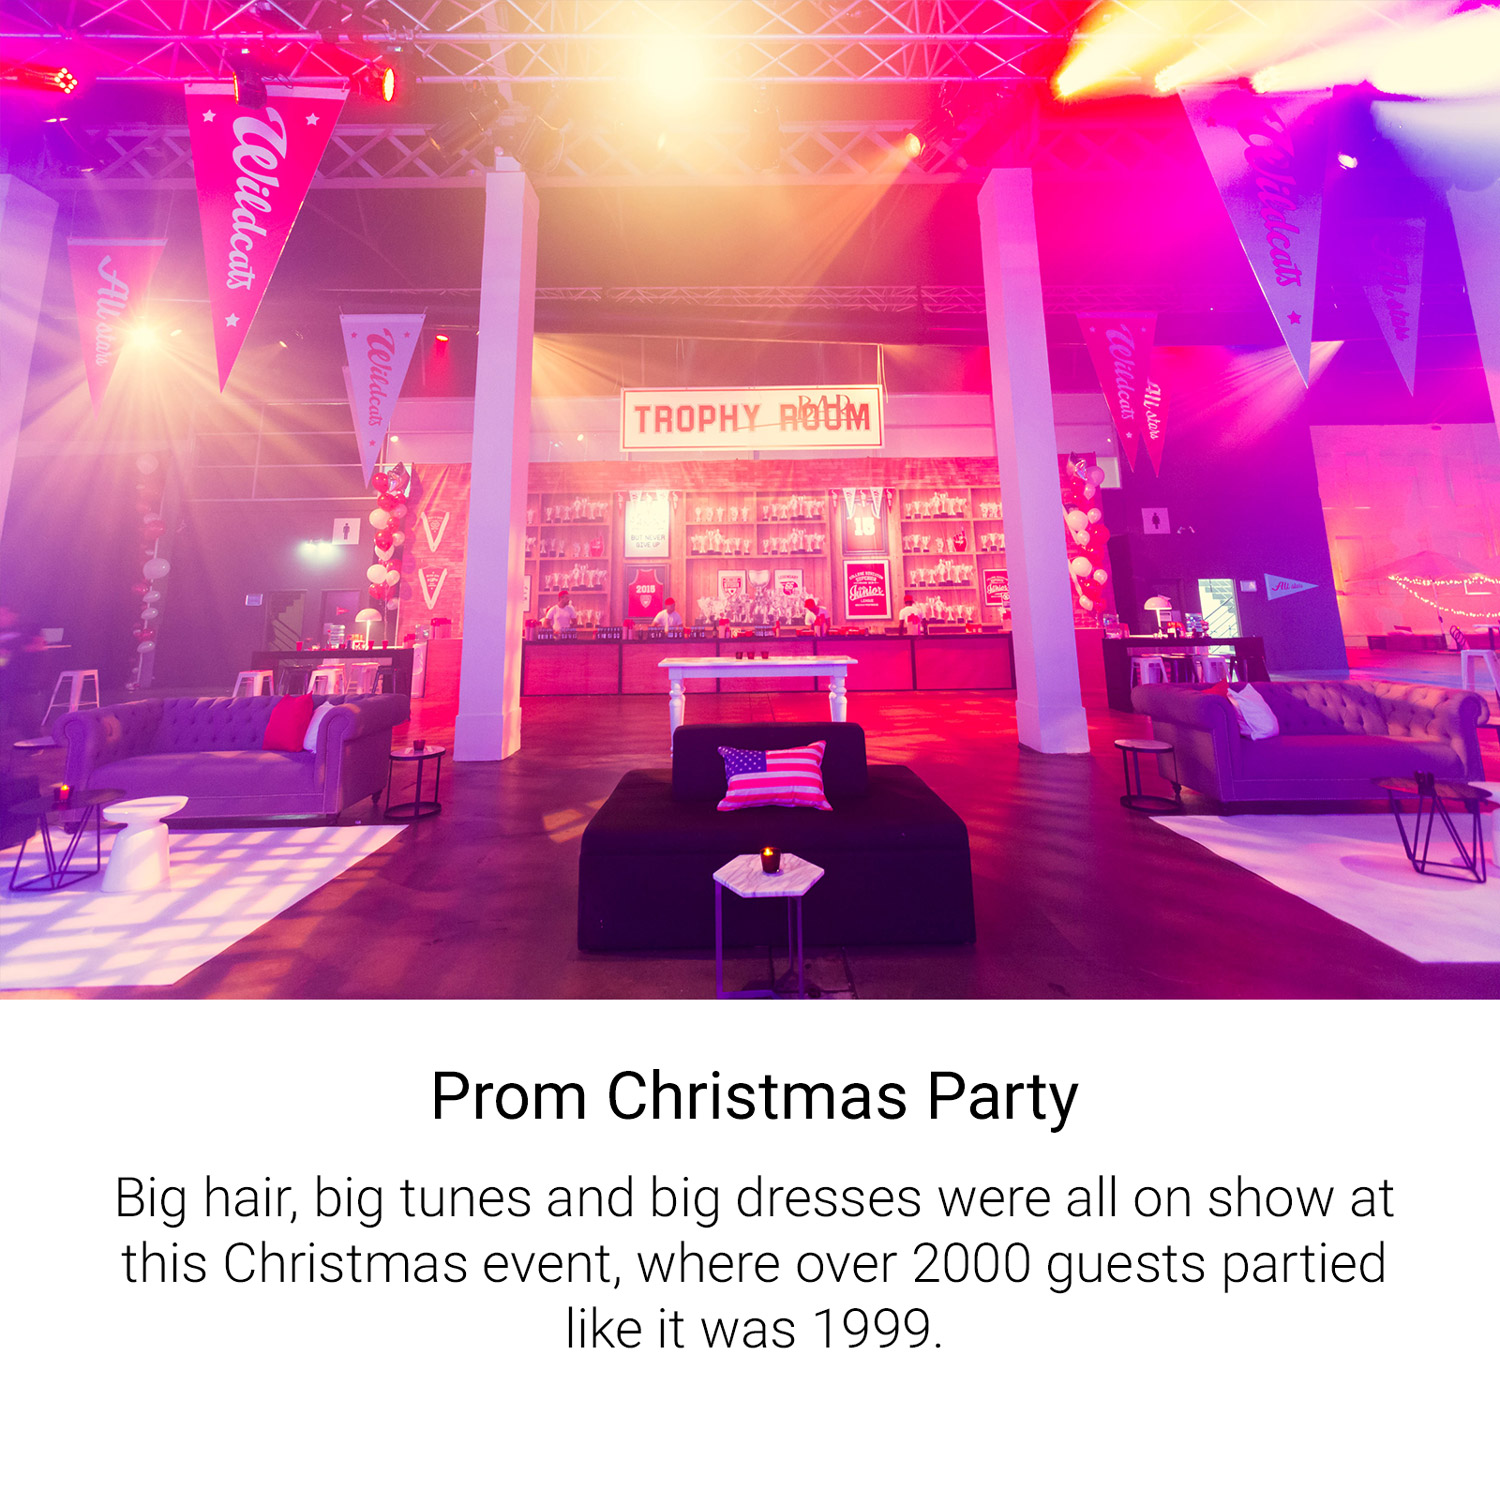 Prom Christmas Party